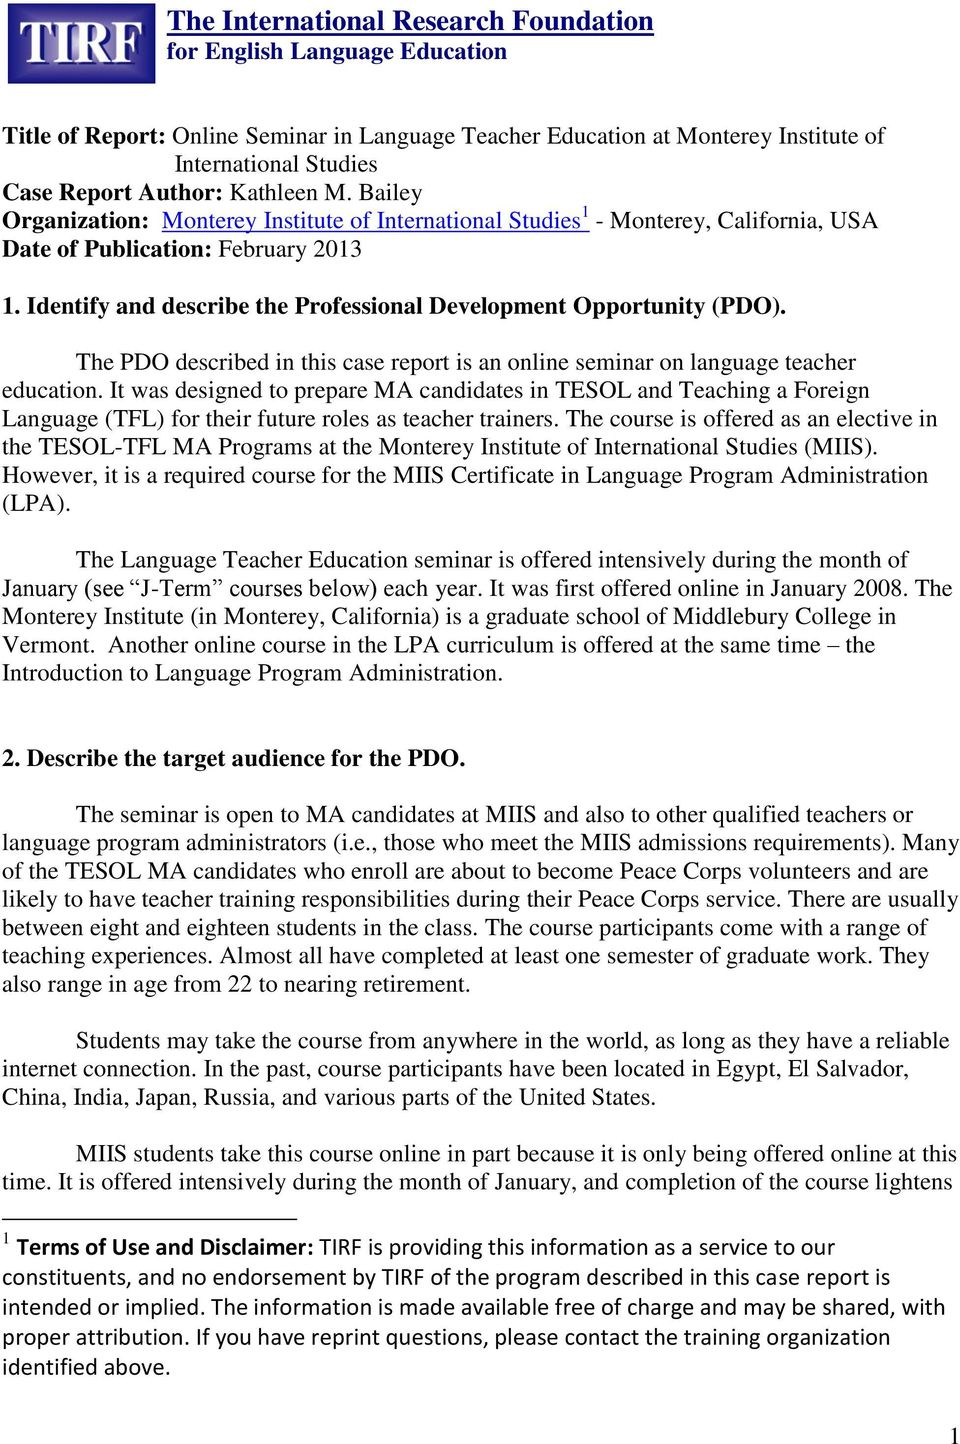 Identify and describe the Professional Development Opportunity (PDO). The PDO described in this case report is an online seminar on language teacher education.